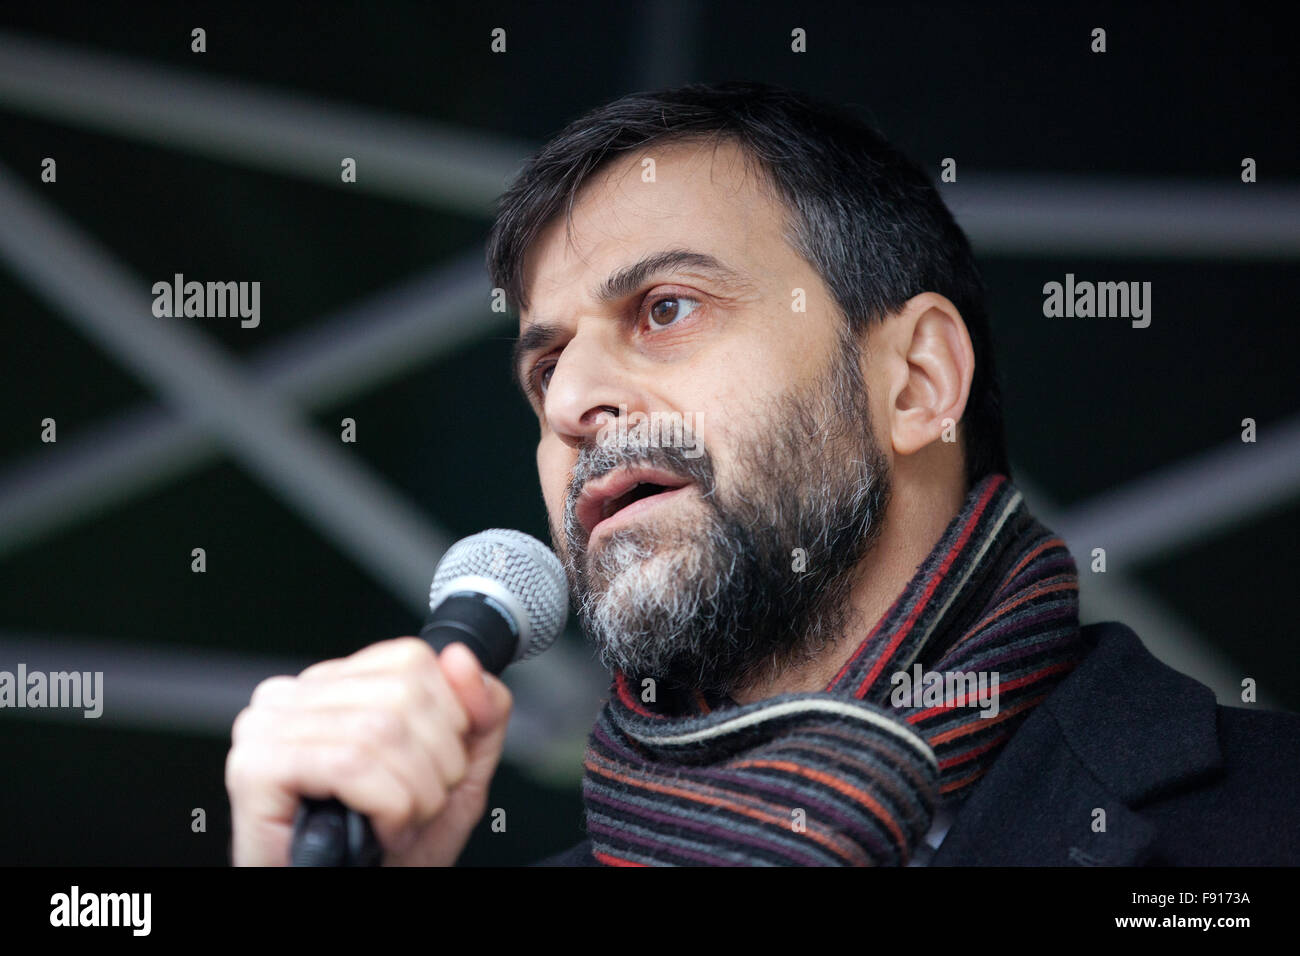 London, UK. 12th December, 2015. Mohammed Kozbar, Vice-President of the Muslim Association of Britain and Chairman - Stock Image